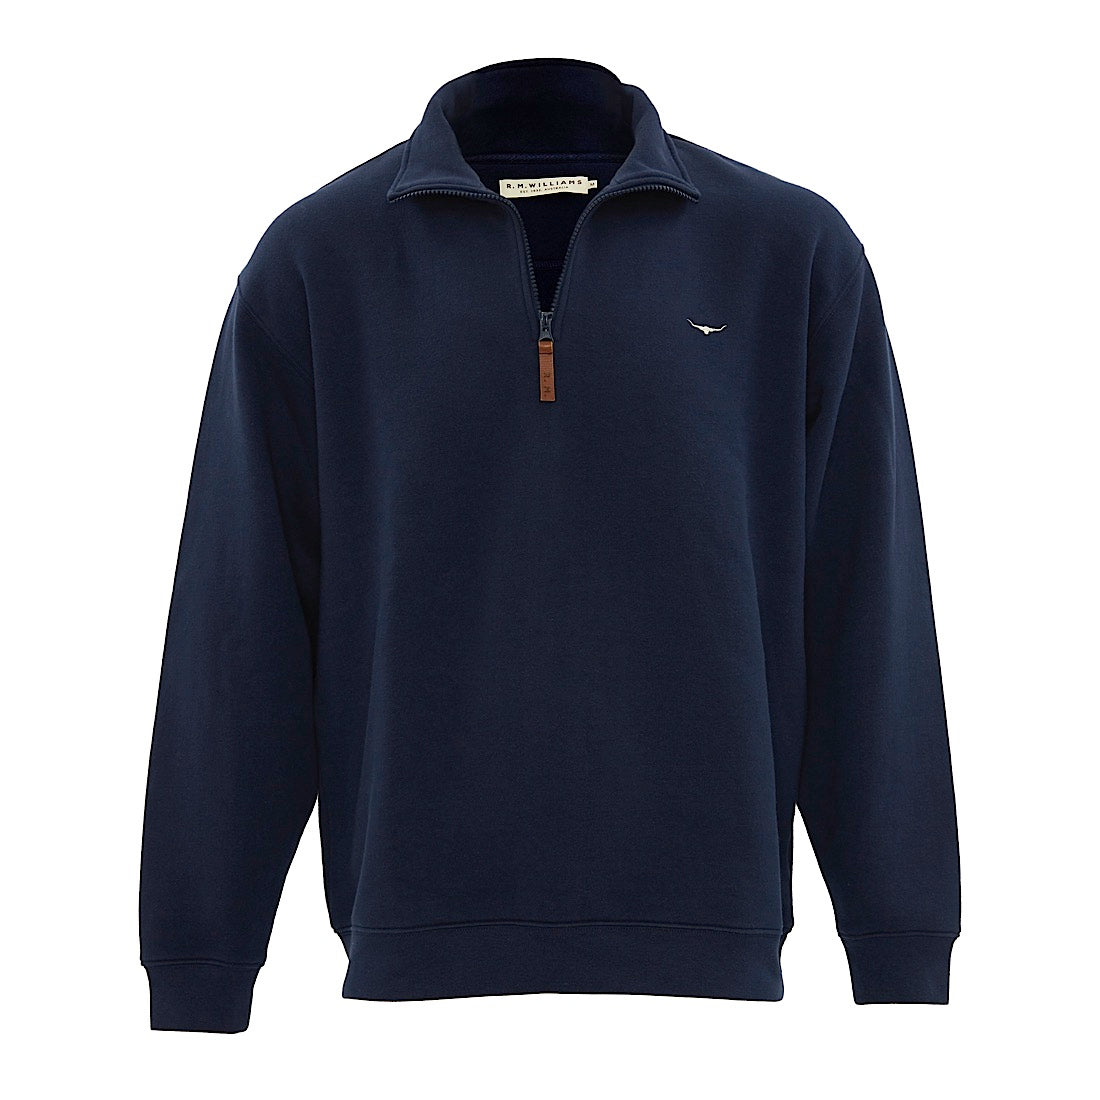 R.M.Williams Mulyungarie Fleece Jumper Navy Regular Fit